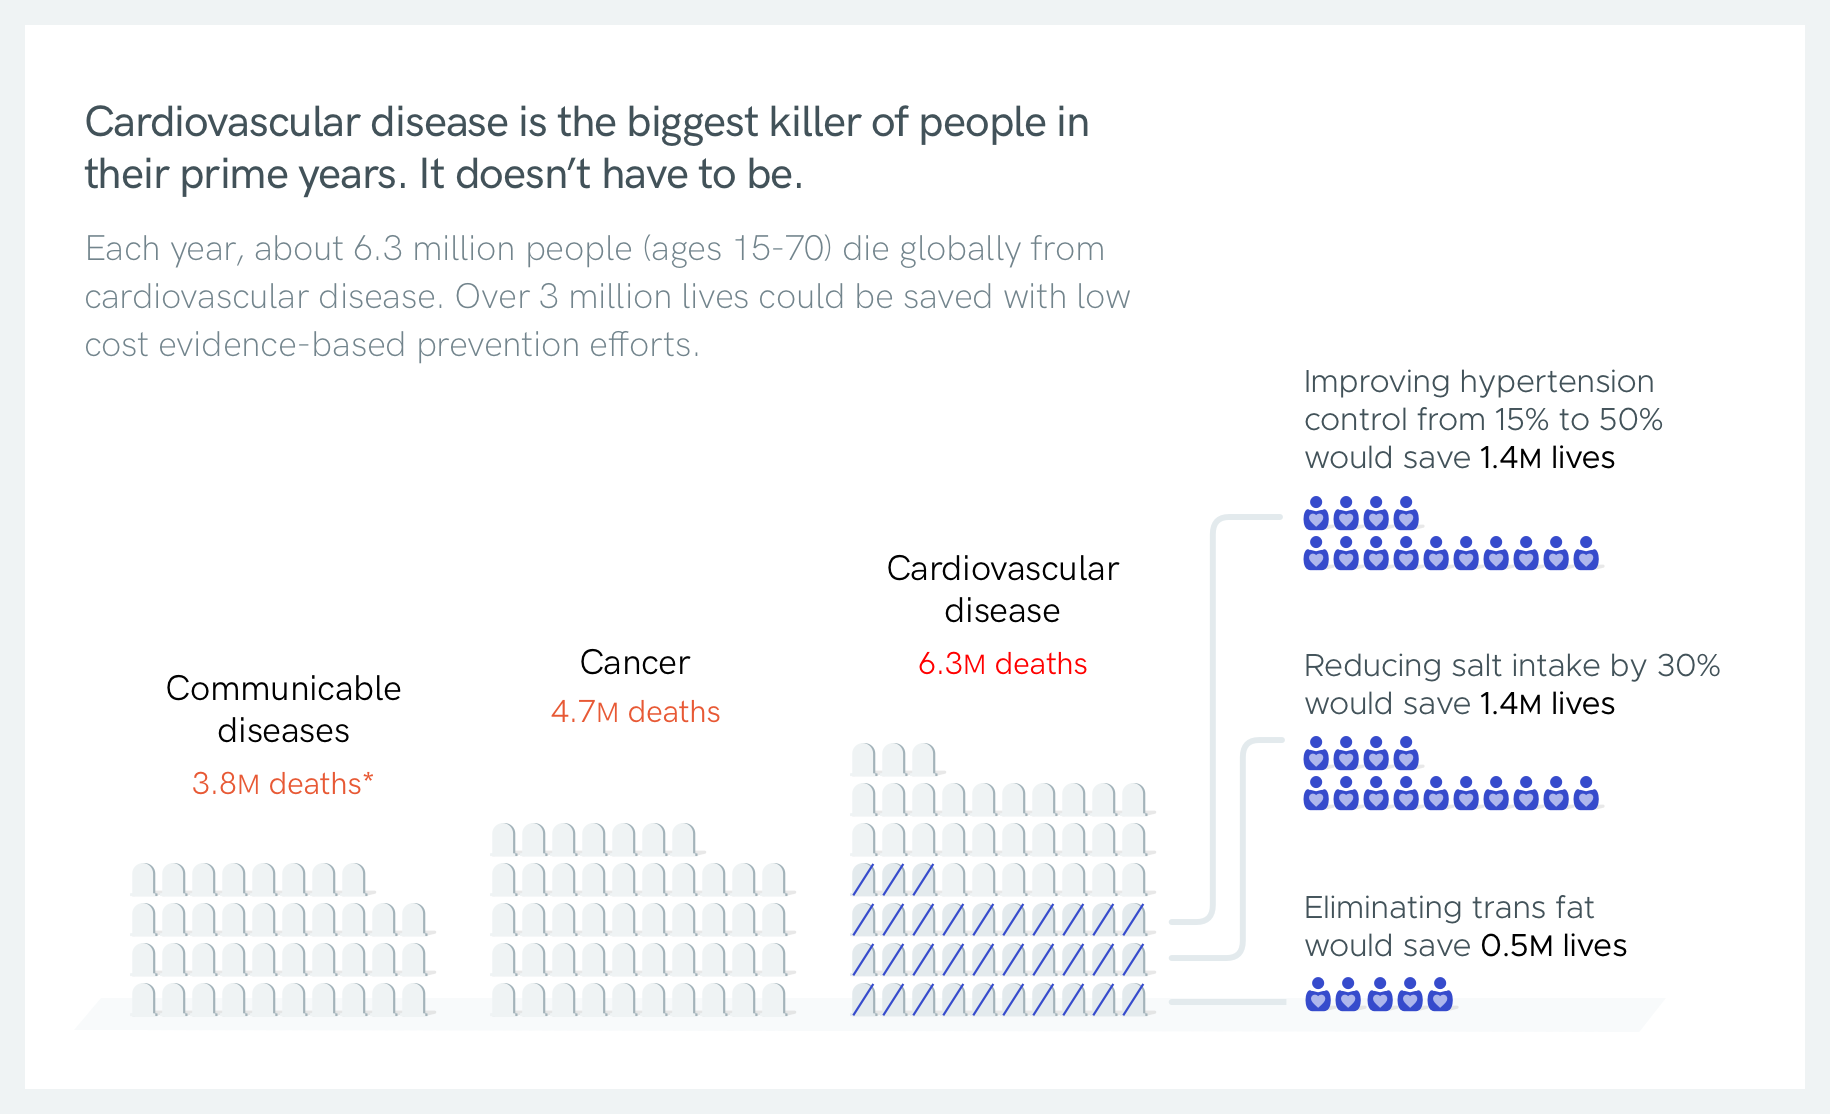 A chart showing the relative scale of deaths from communicable diseases, cancer, and cardiovascular disease.